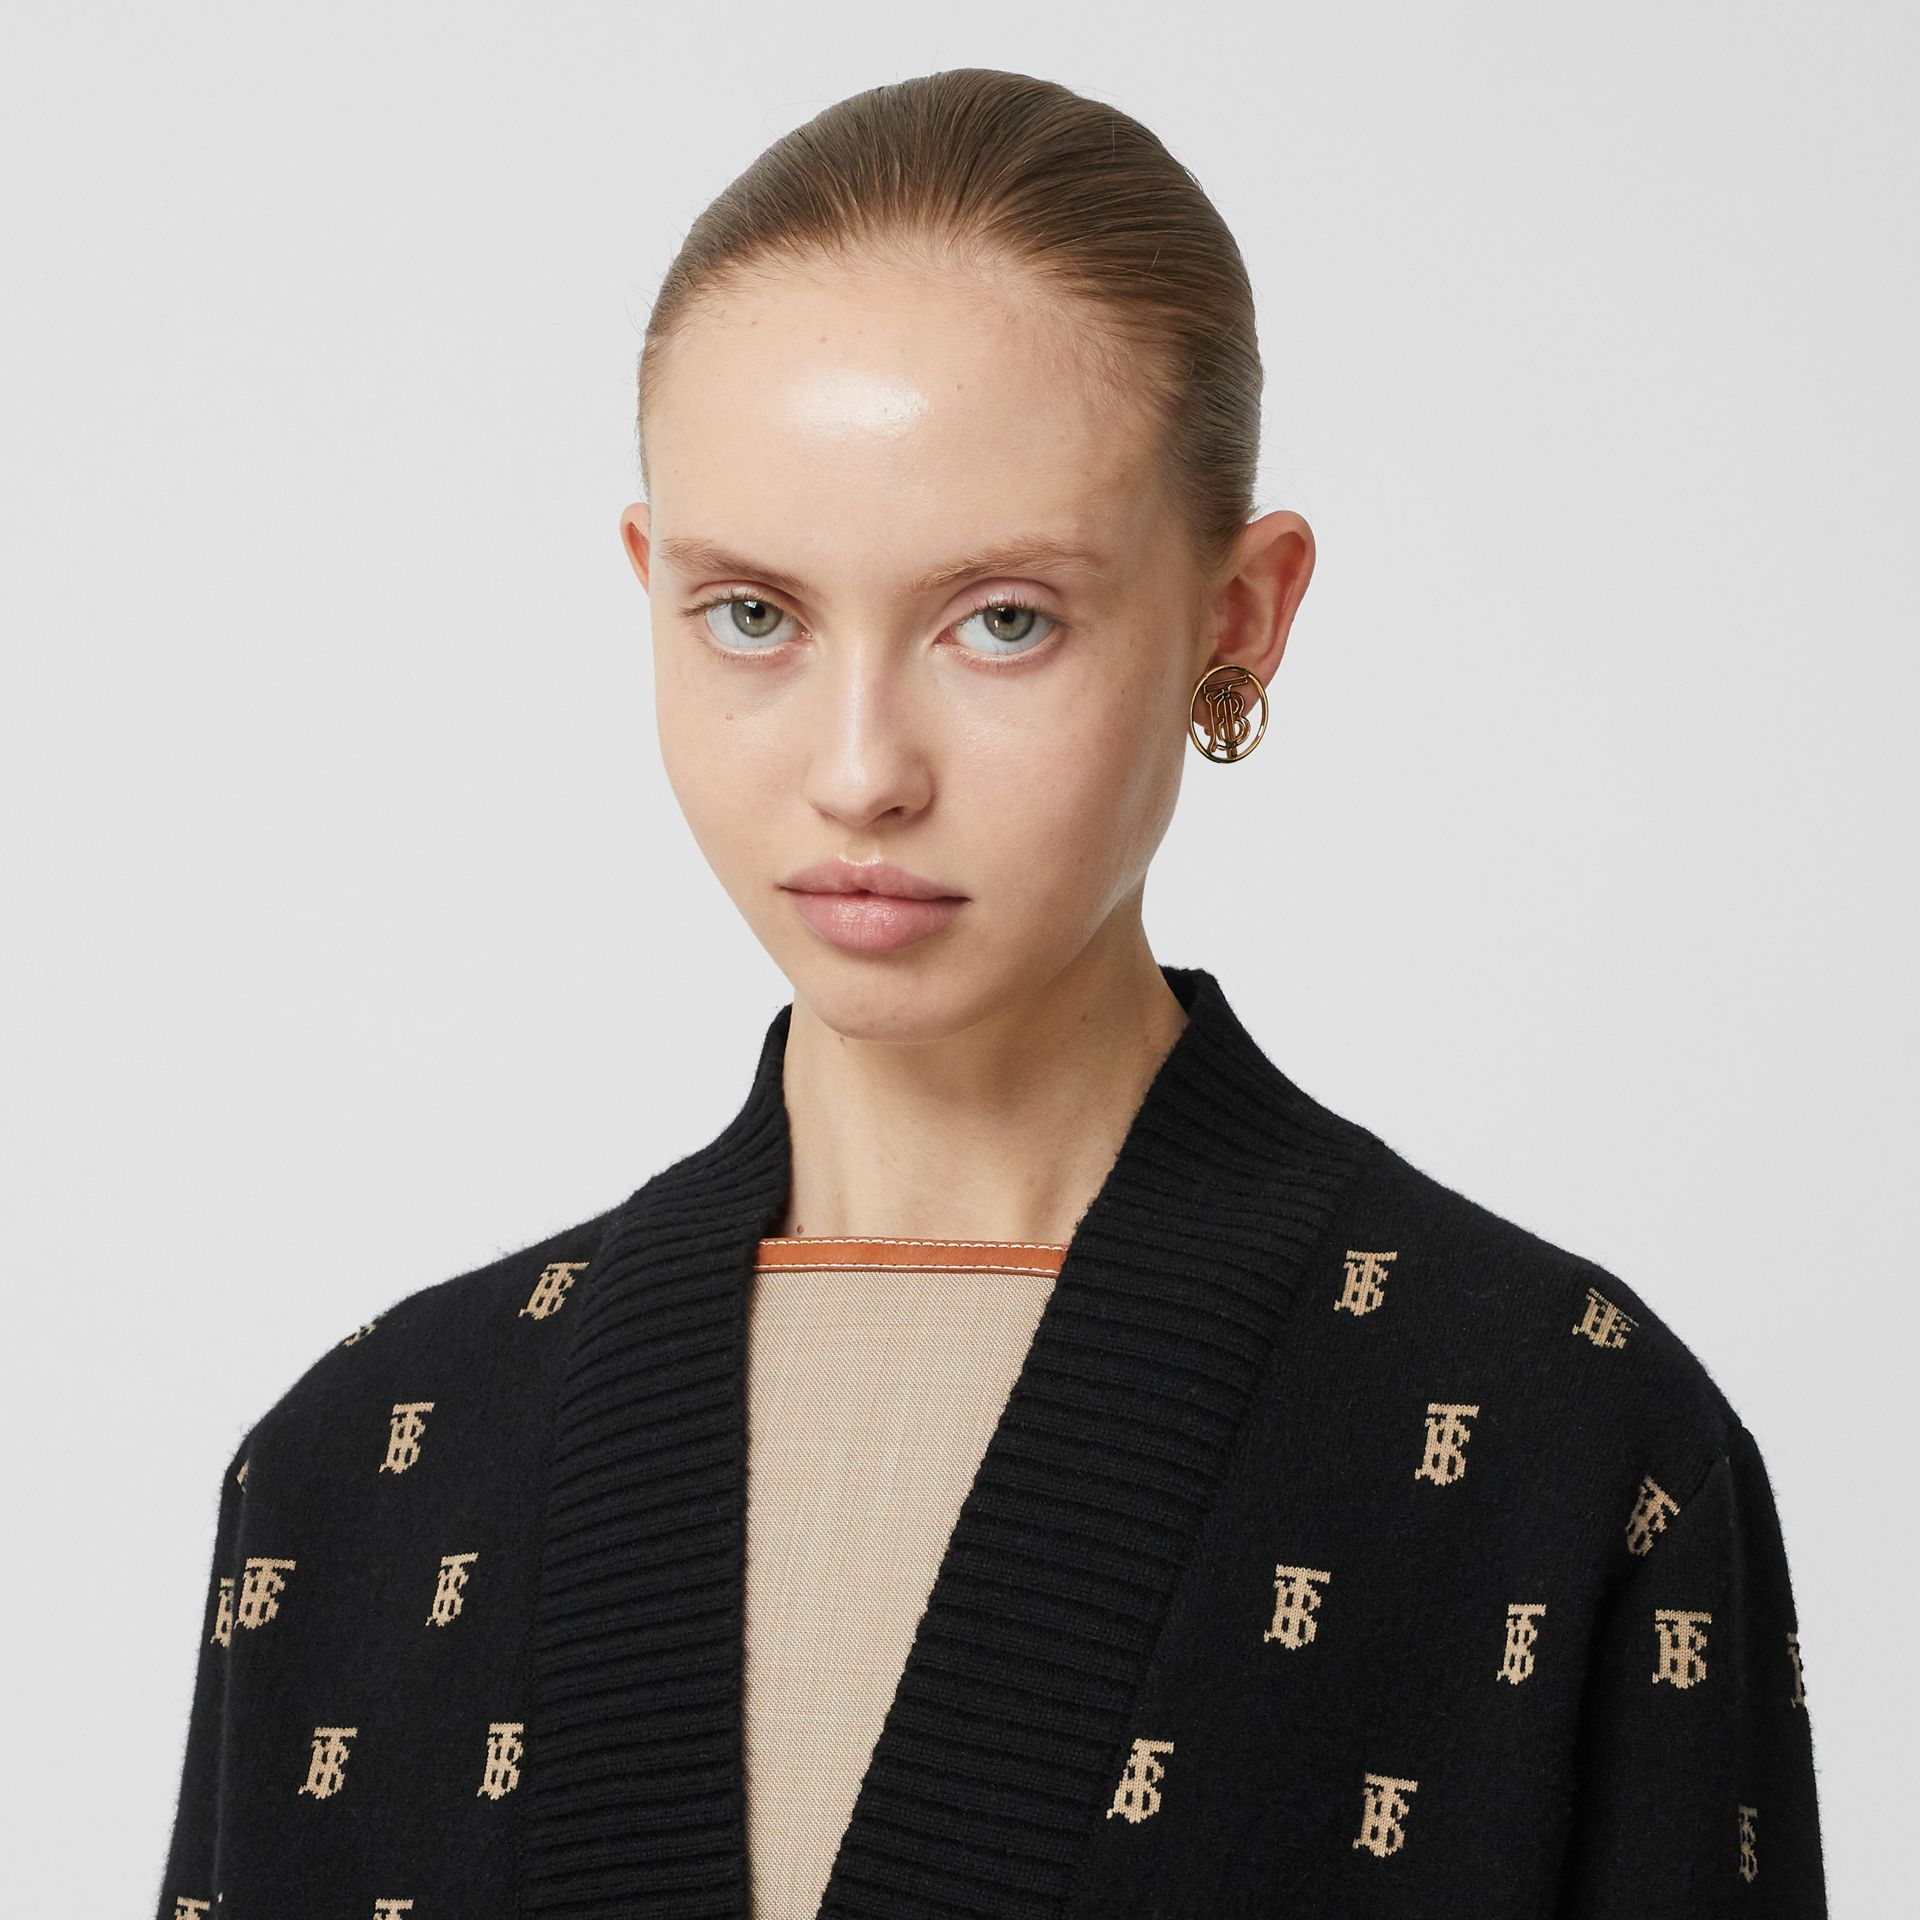 Monogram Wool Cashmere Blend Oversized Cardigan in Black - Women | Burberry Hong Kong S.A.R - gallery image 1